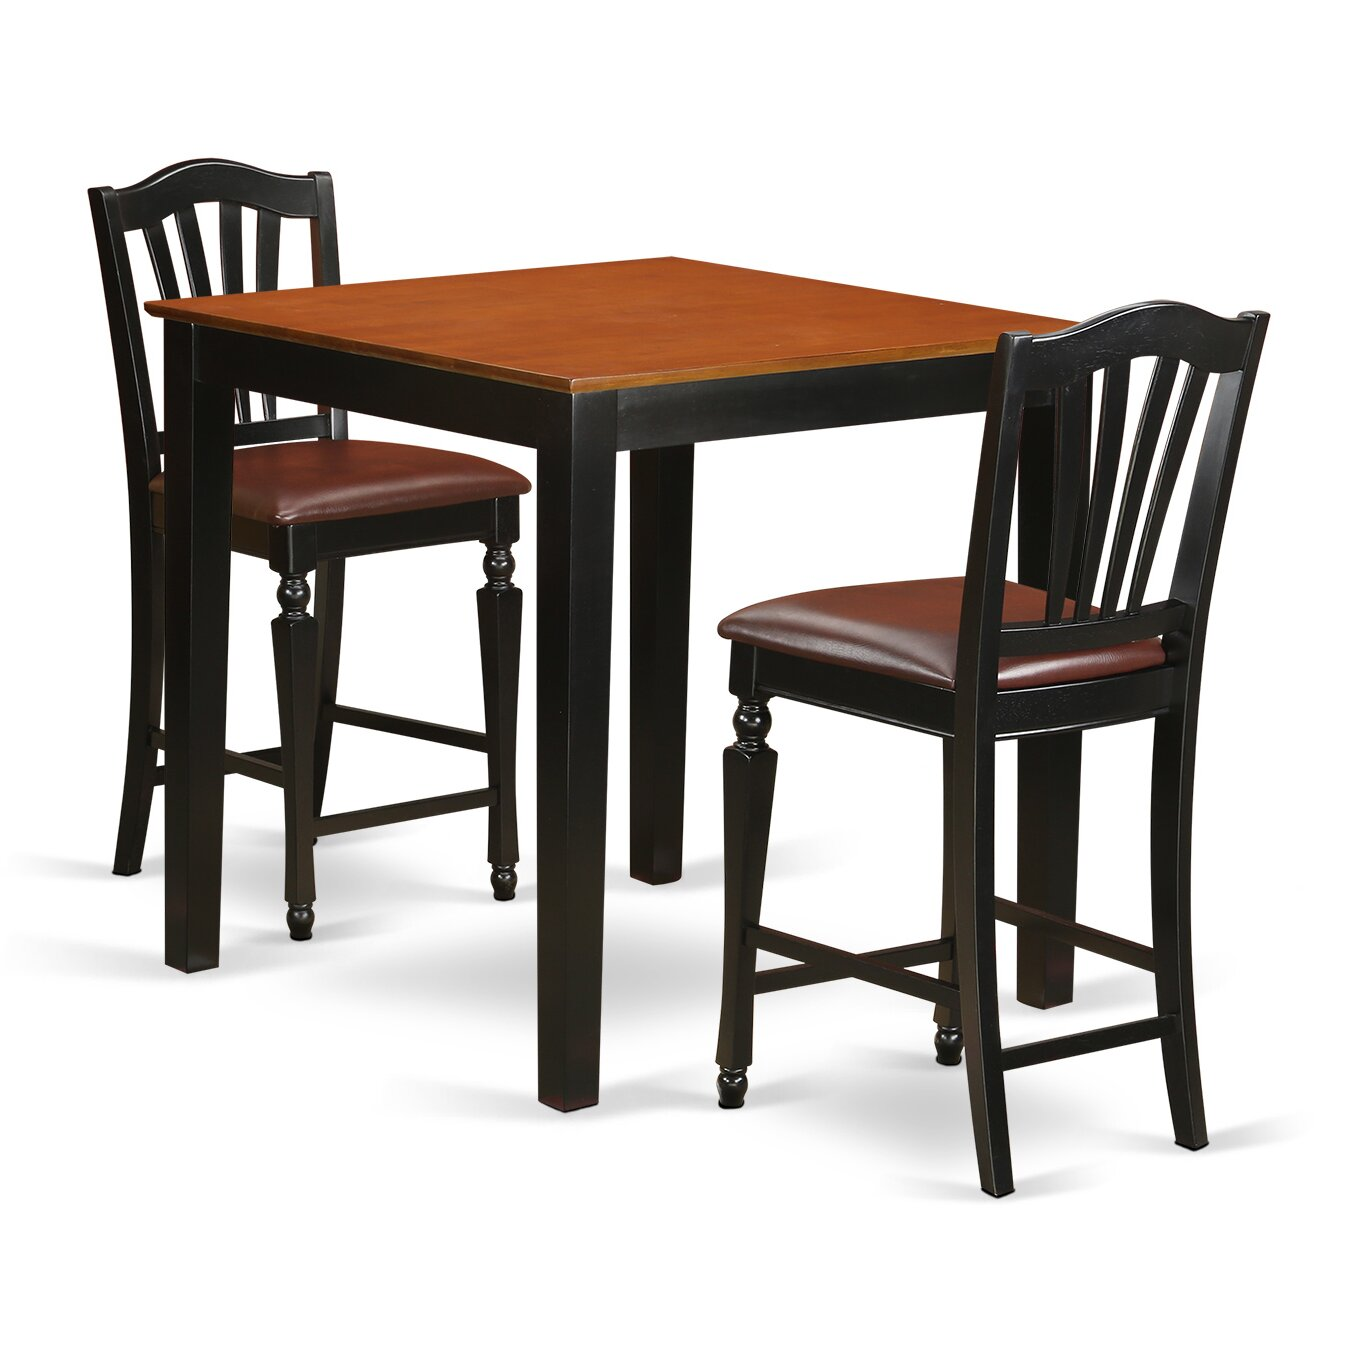 Roundhill Furniture 3 Piece Counter Height Pub Table Set: East West 3 Piece Counter Height Pub Table Set